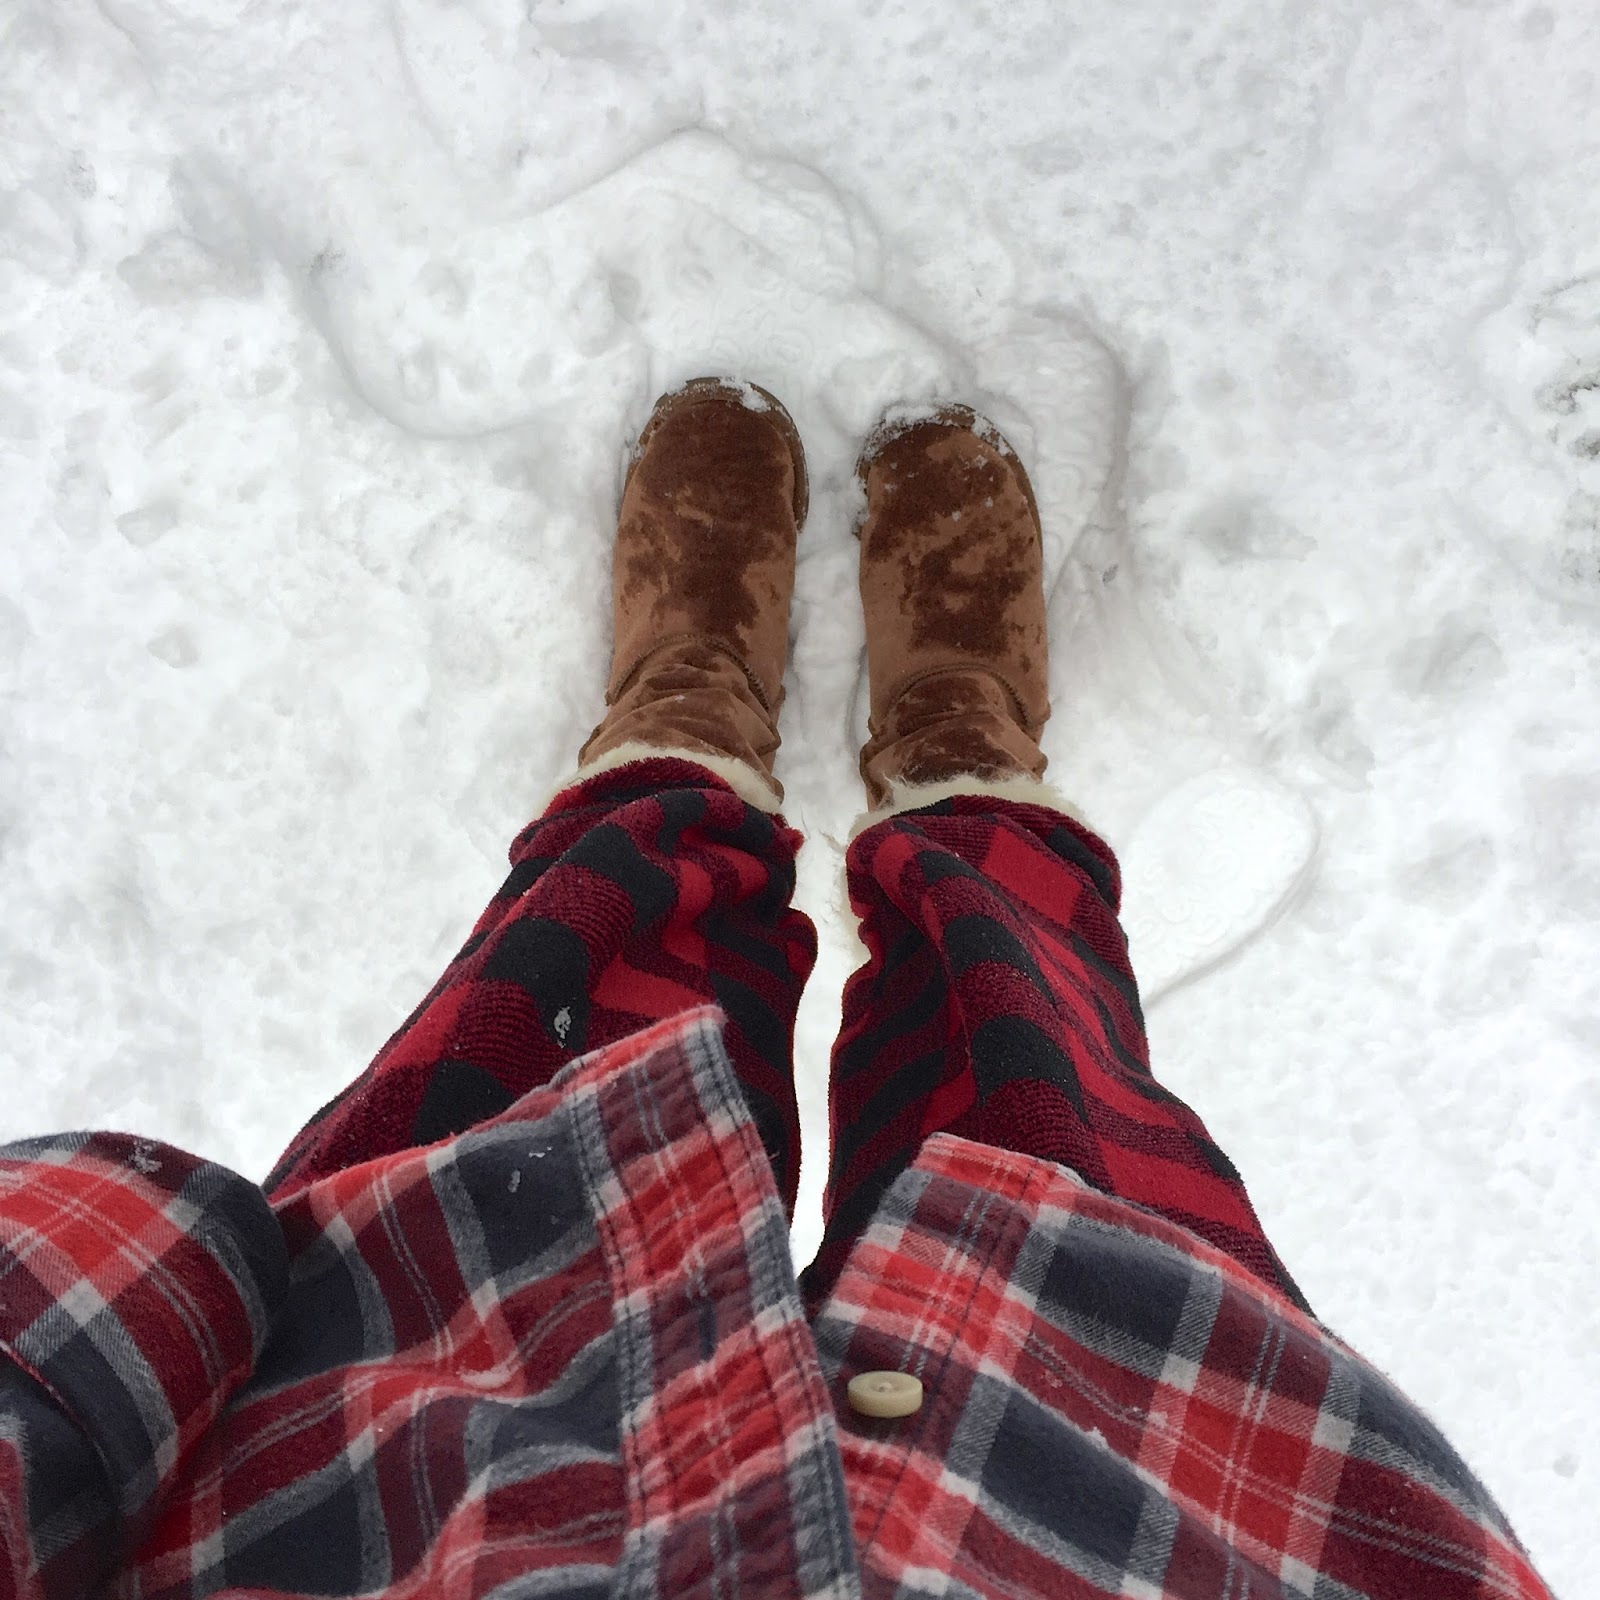 cozy outfit view from the top wearing ugg boots in the snow